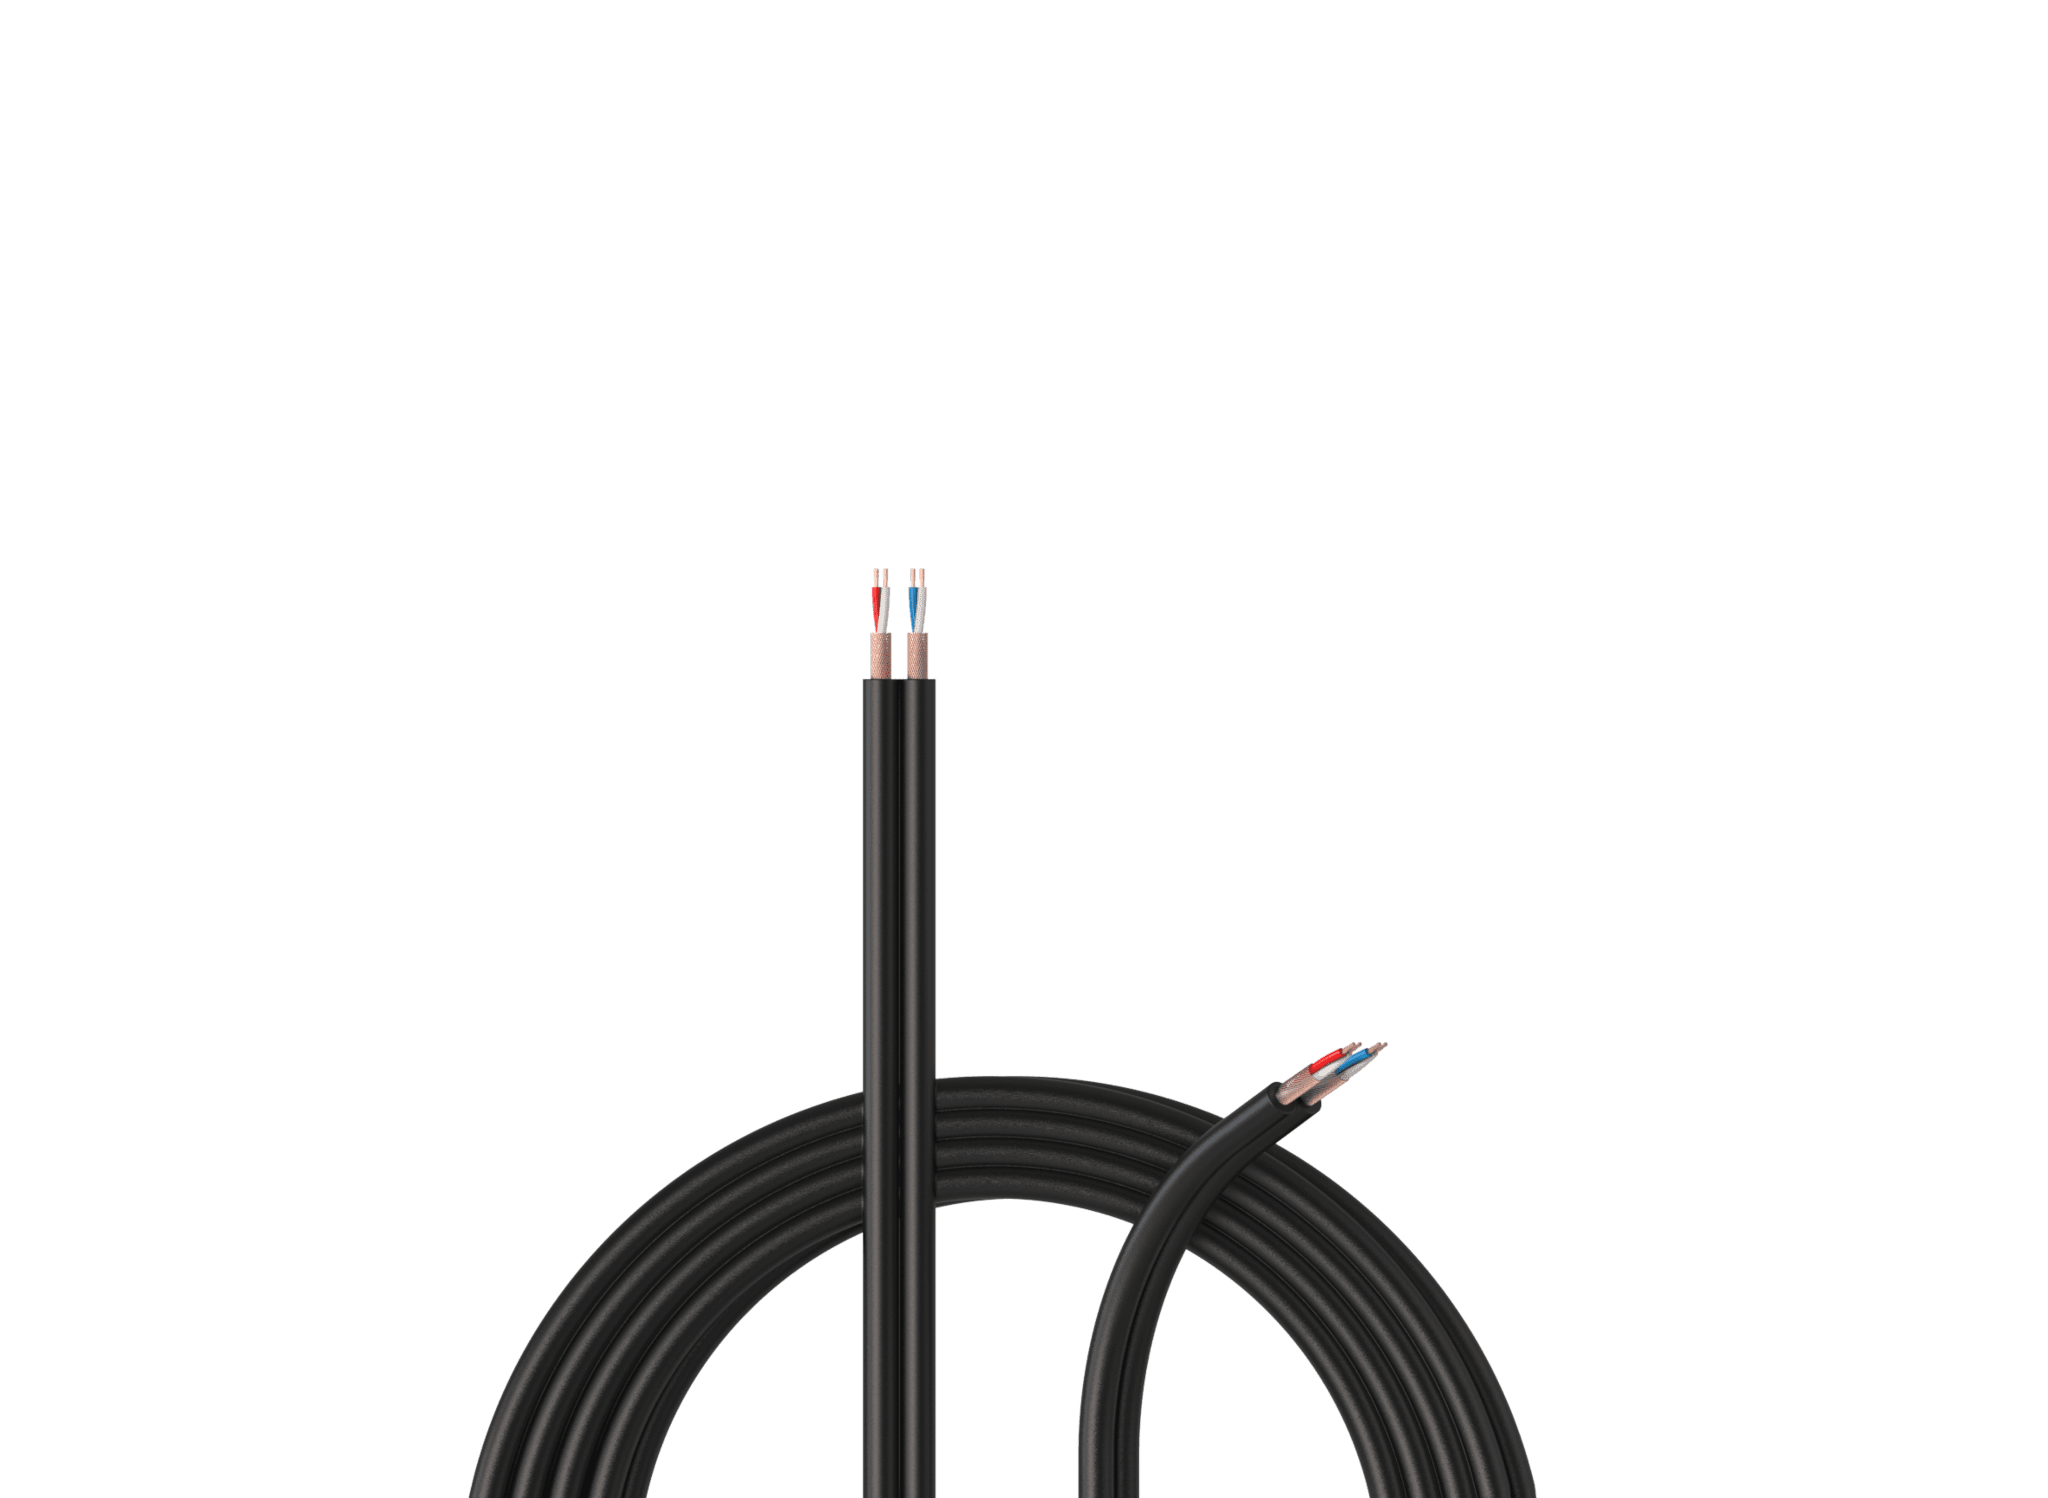 Parallel speaker cables